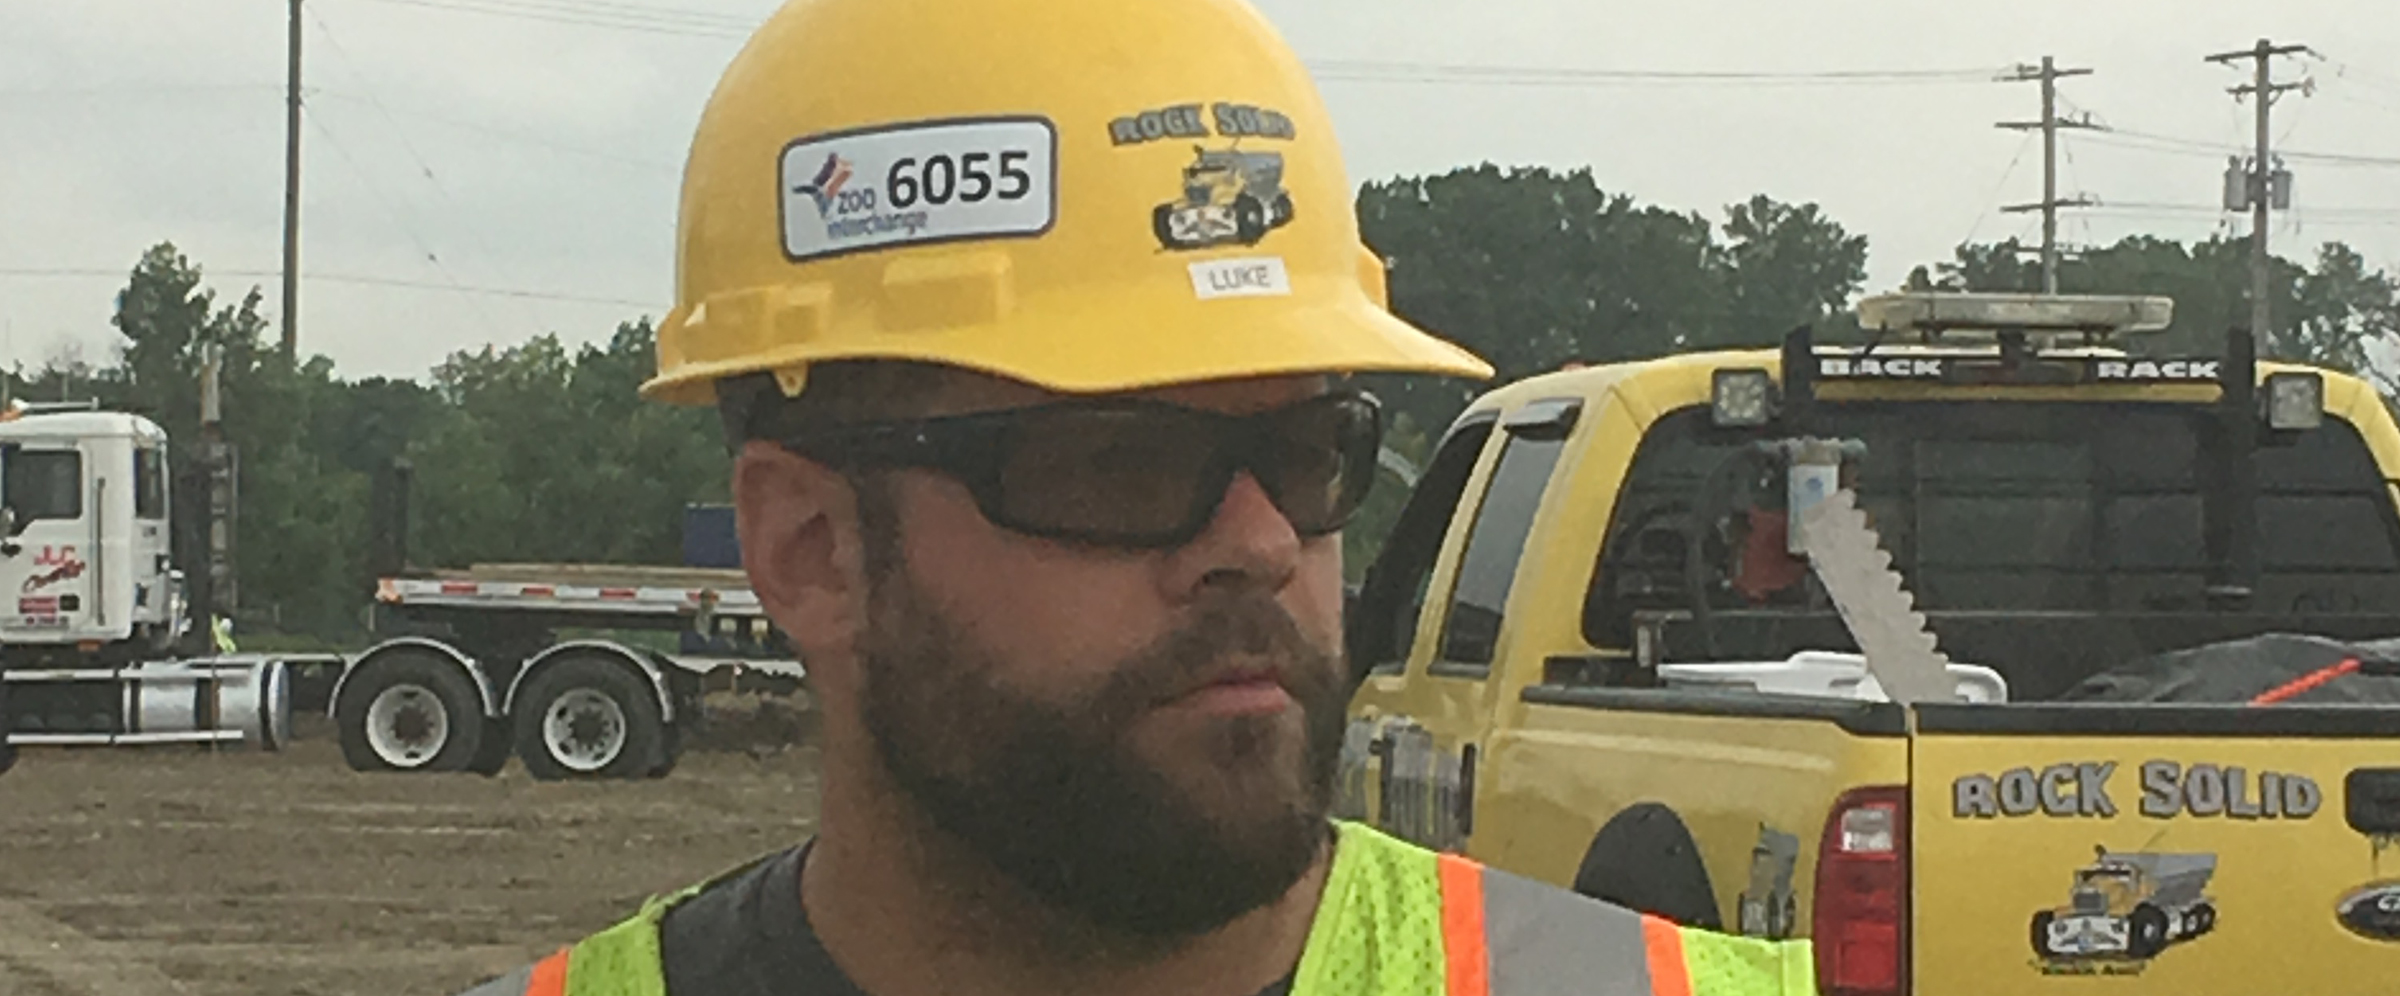 Safety Manager Luke Rossman